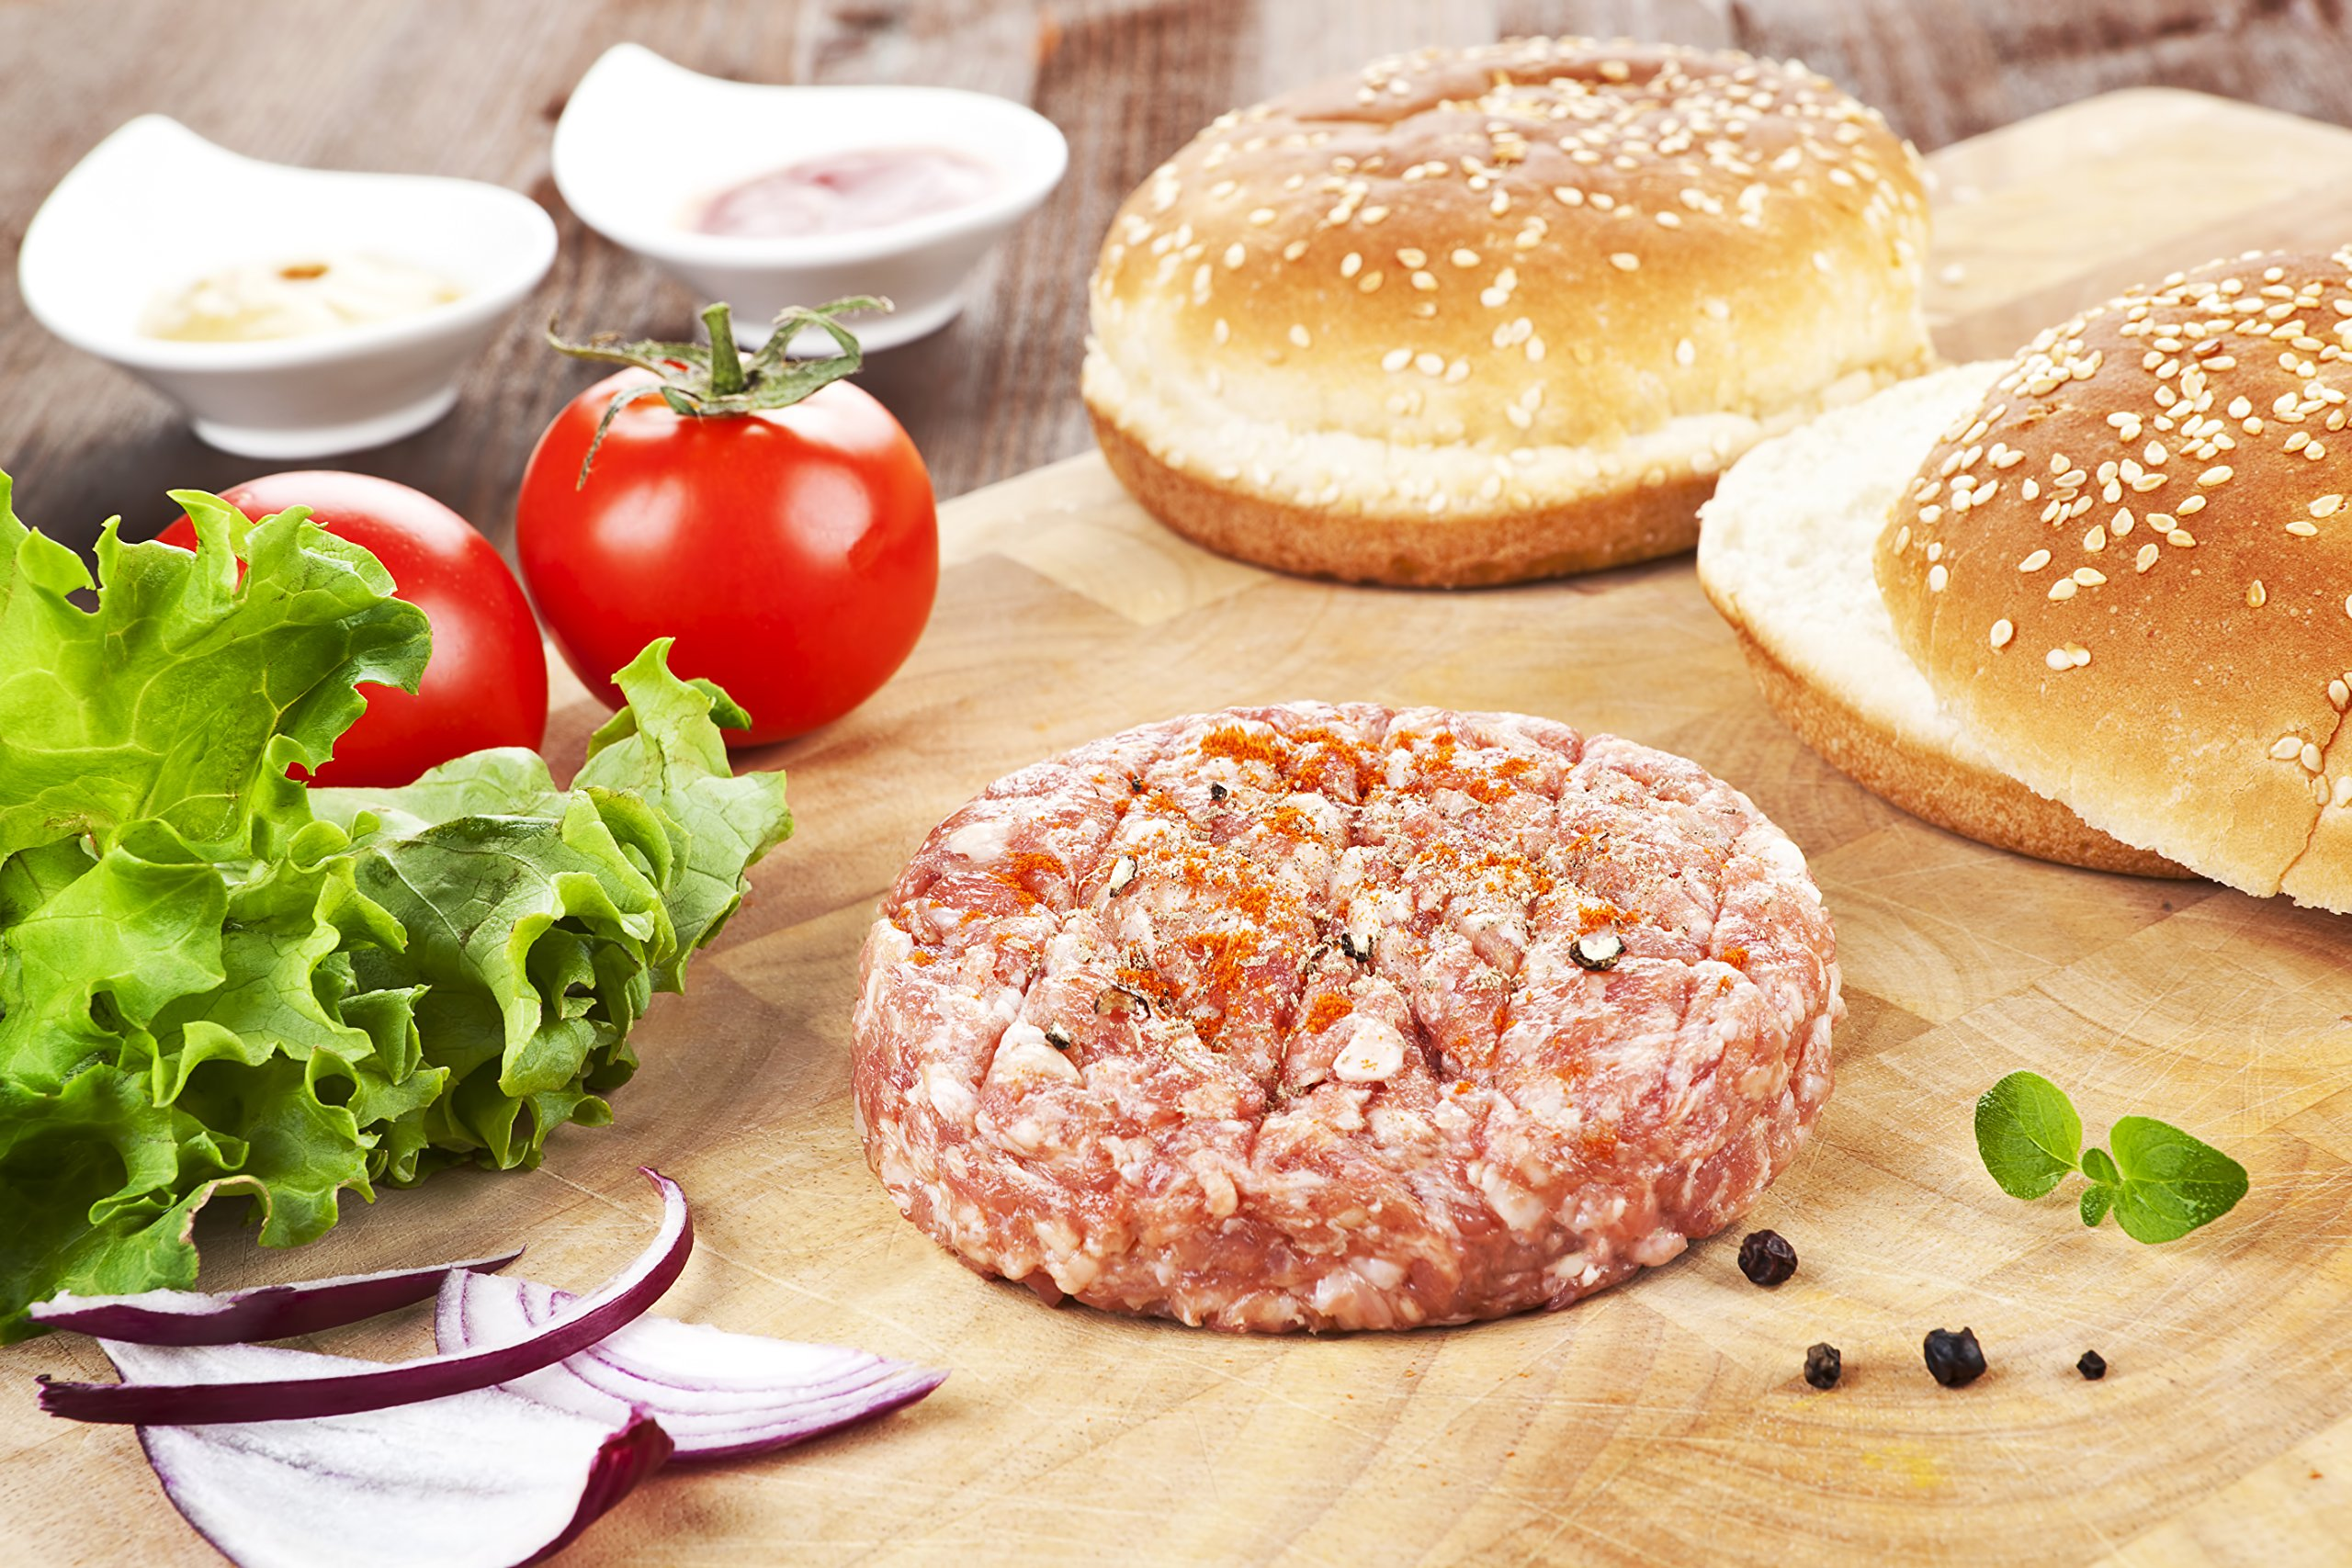 Organic Kosher Burger Sampler 4 Count of Each 10OZ Kobe Beef, Highland Lamb, Chicken And Turkey Burgers Perfect for any BBQ Grill Occasion